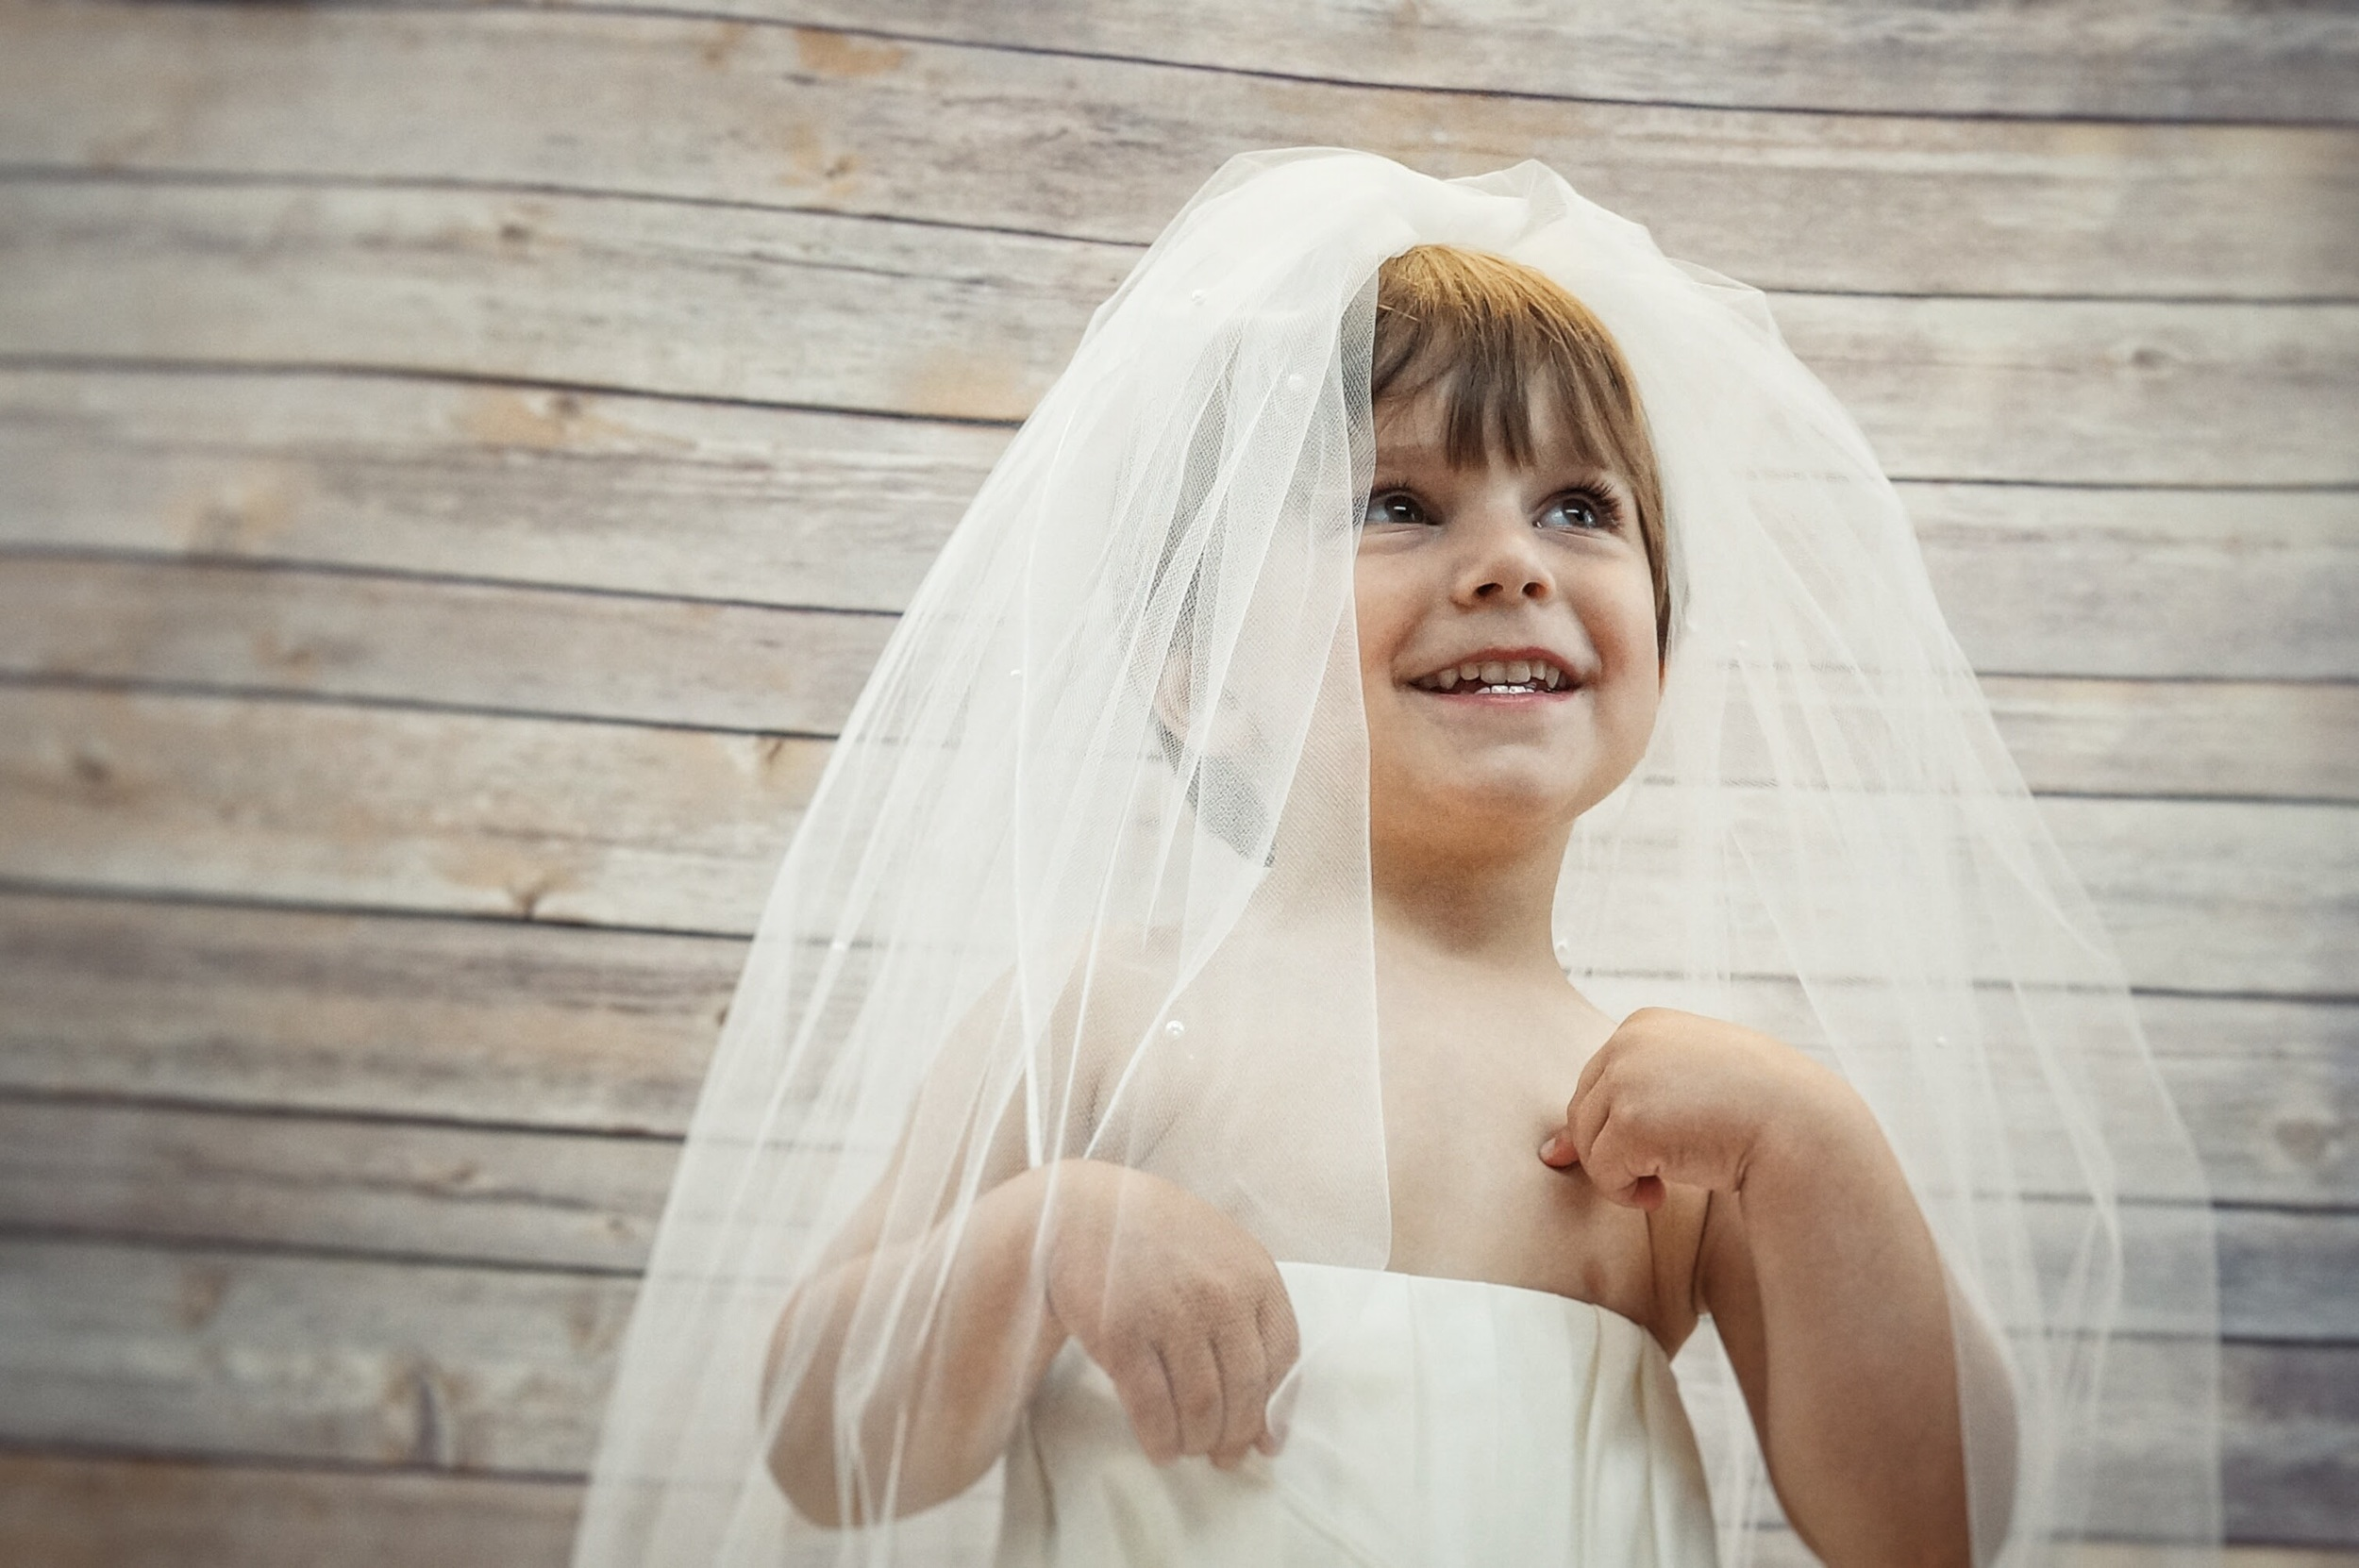 Asking mommy to marry him